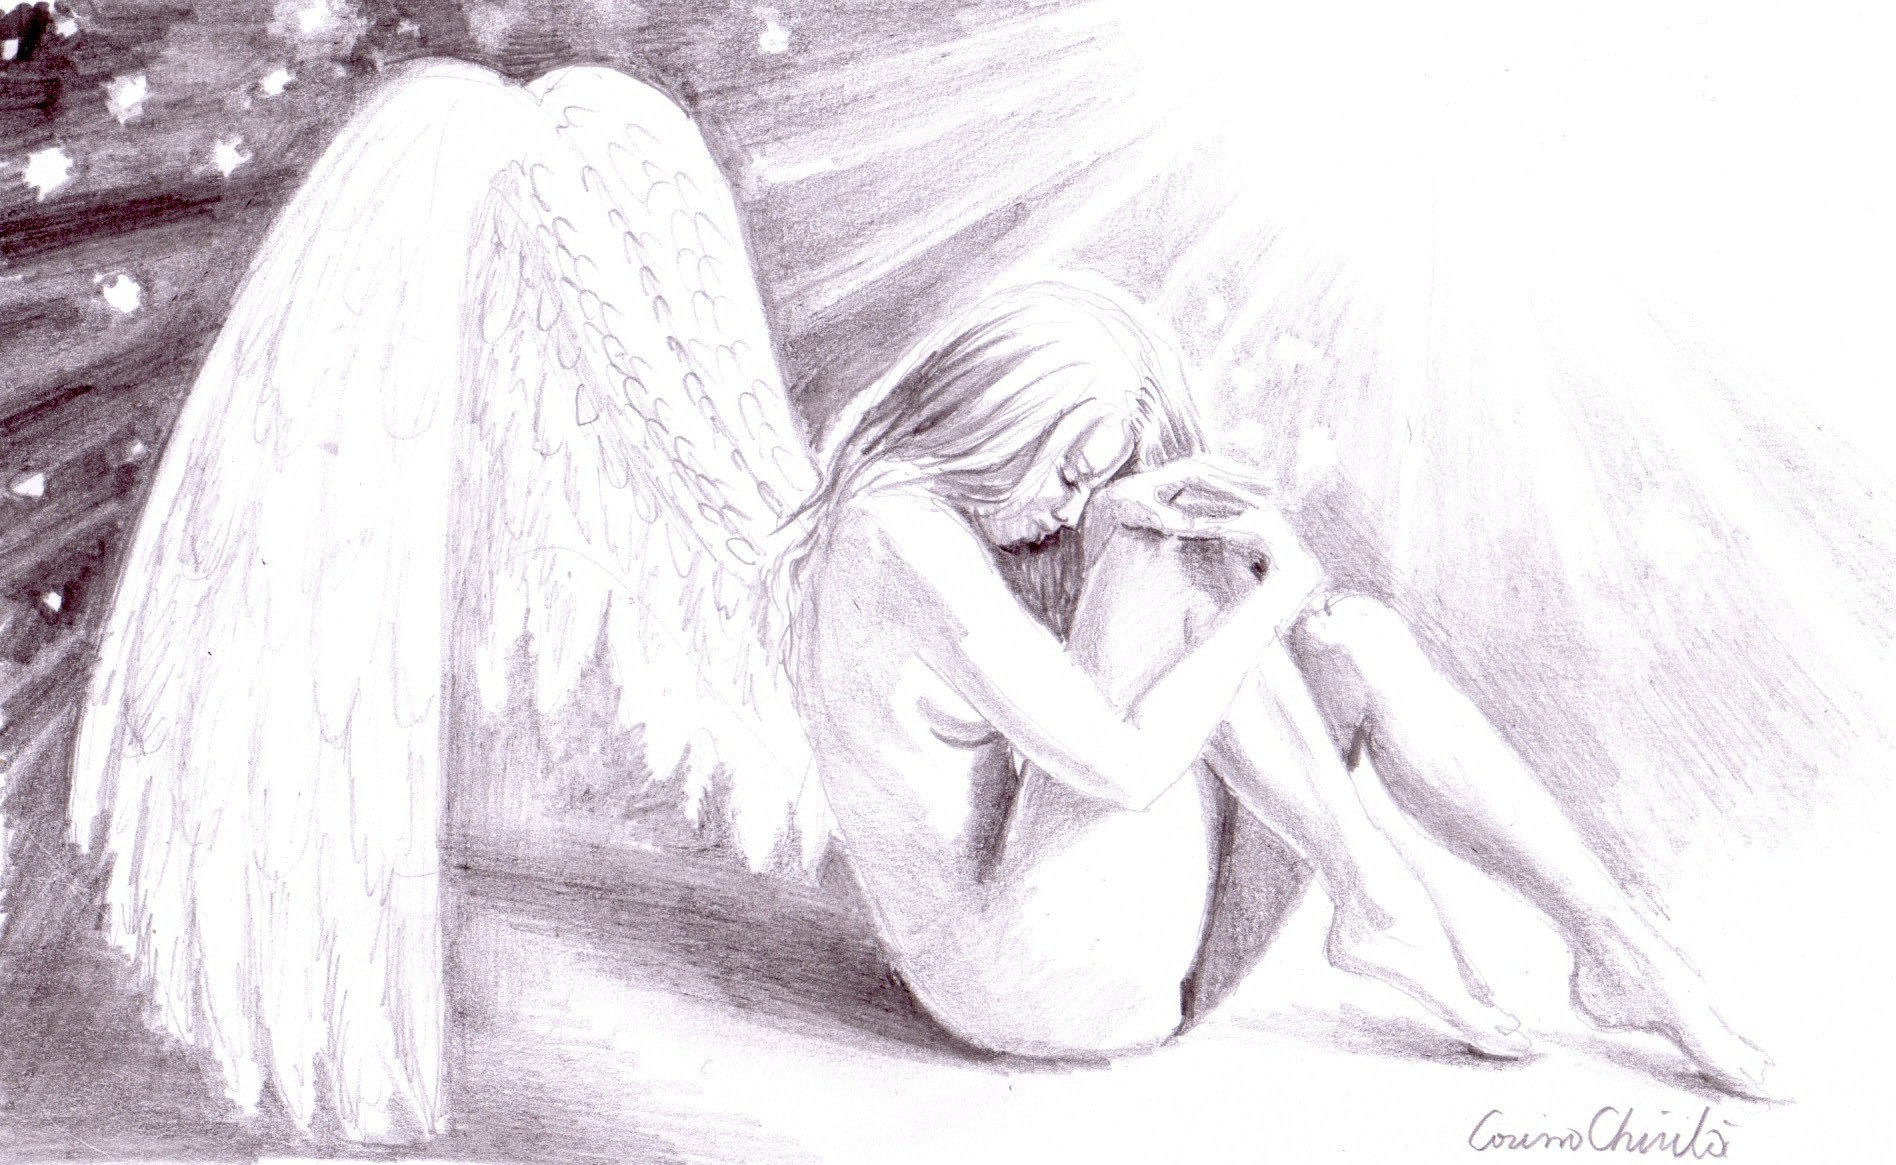 Sad lonely broken angel pencil drawing